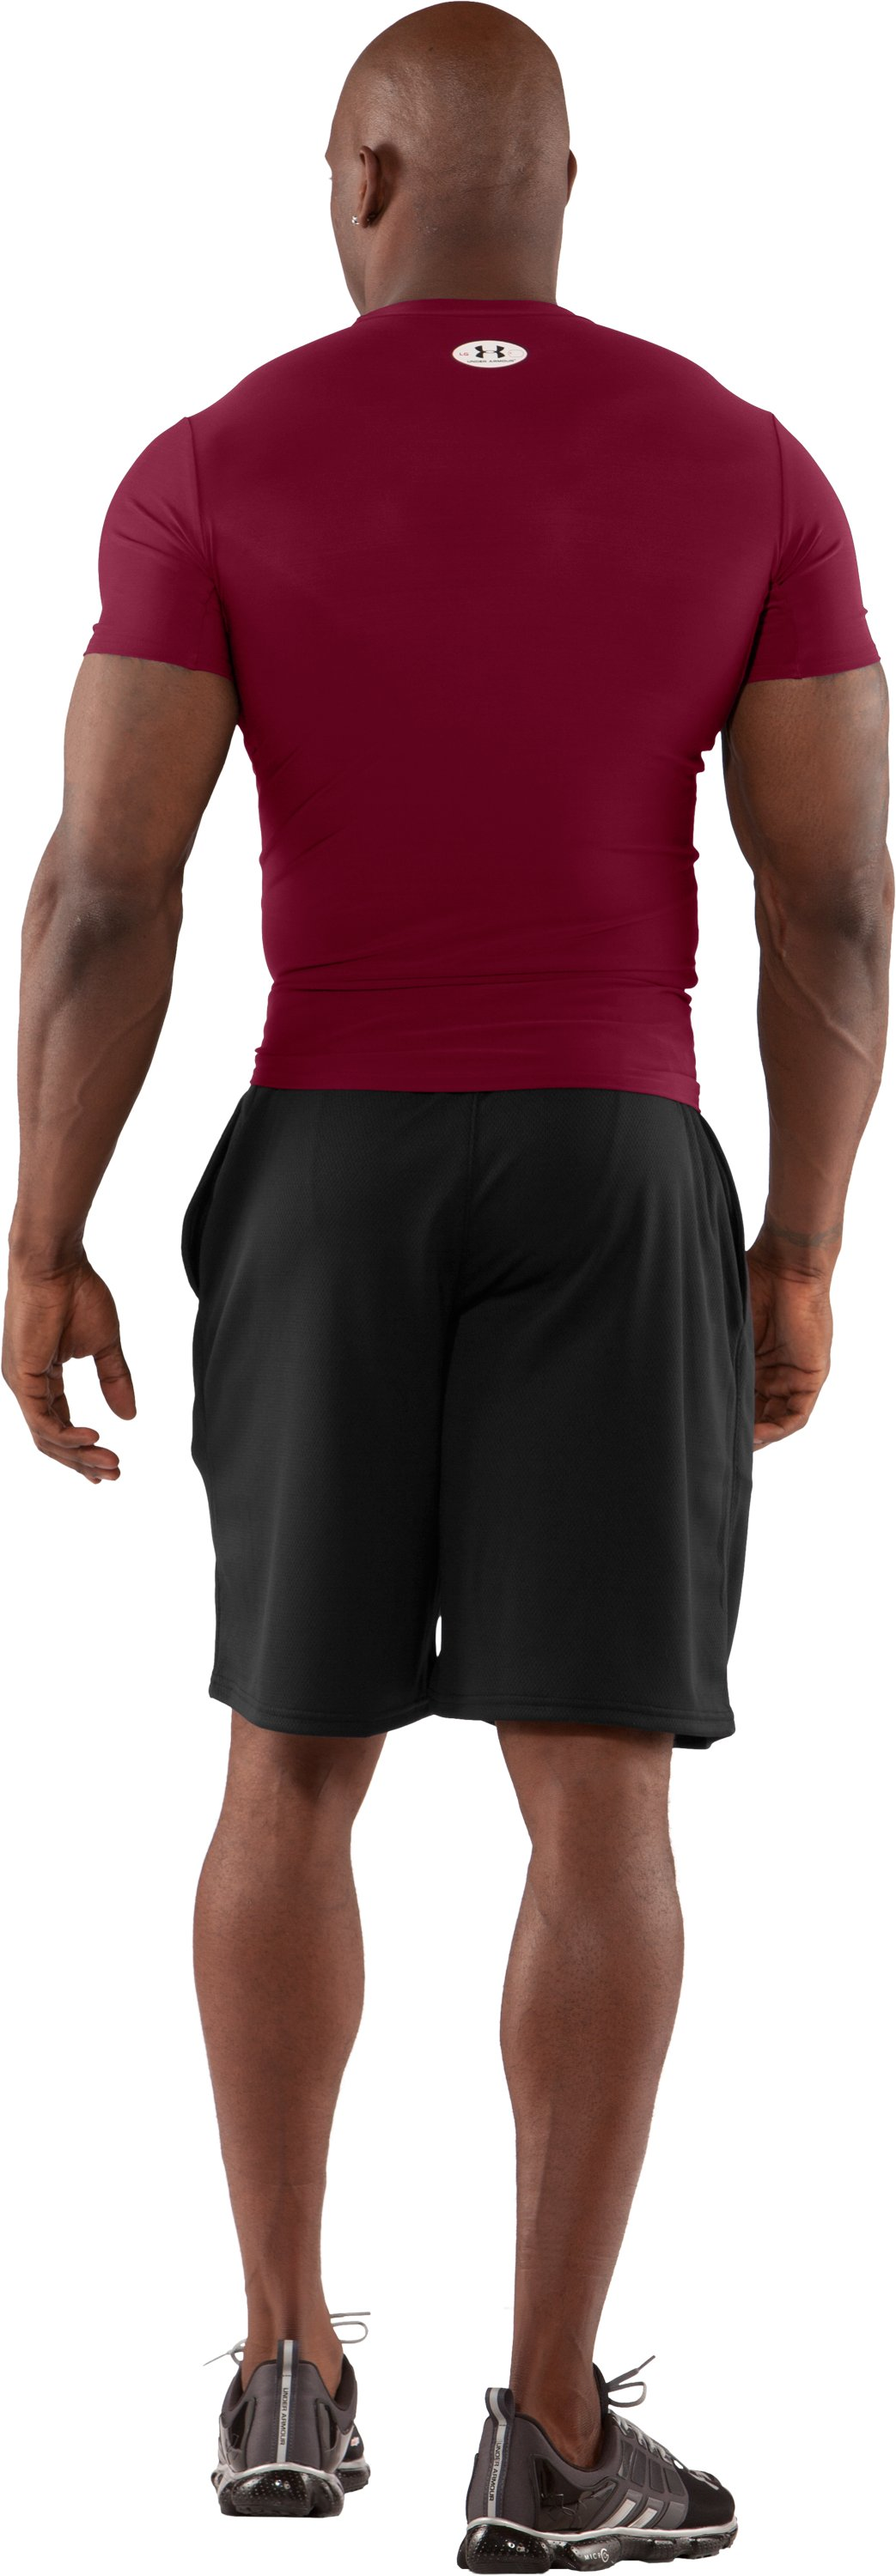 Men's HeatGear® Compression Short Sleeve T-Shirt, Maroon, Back